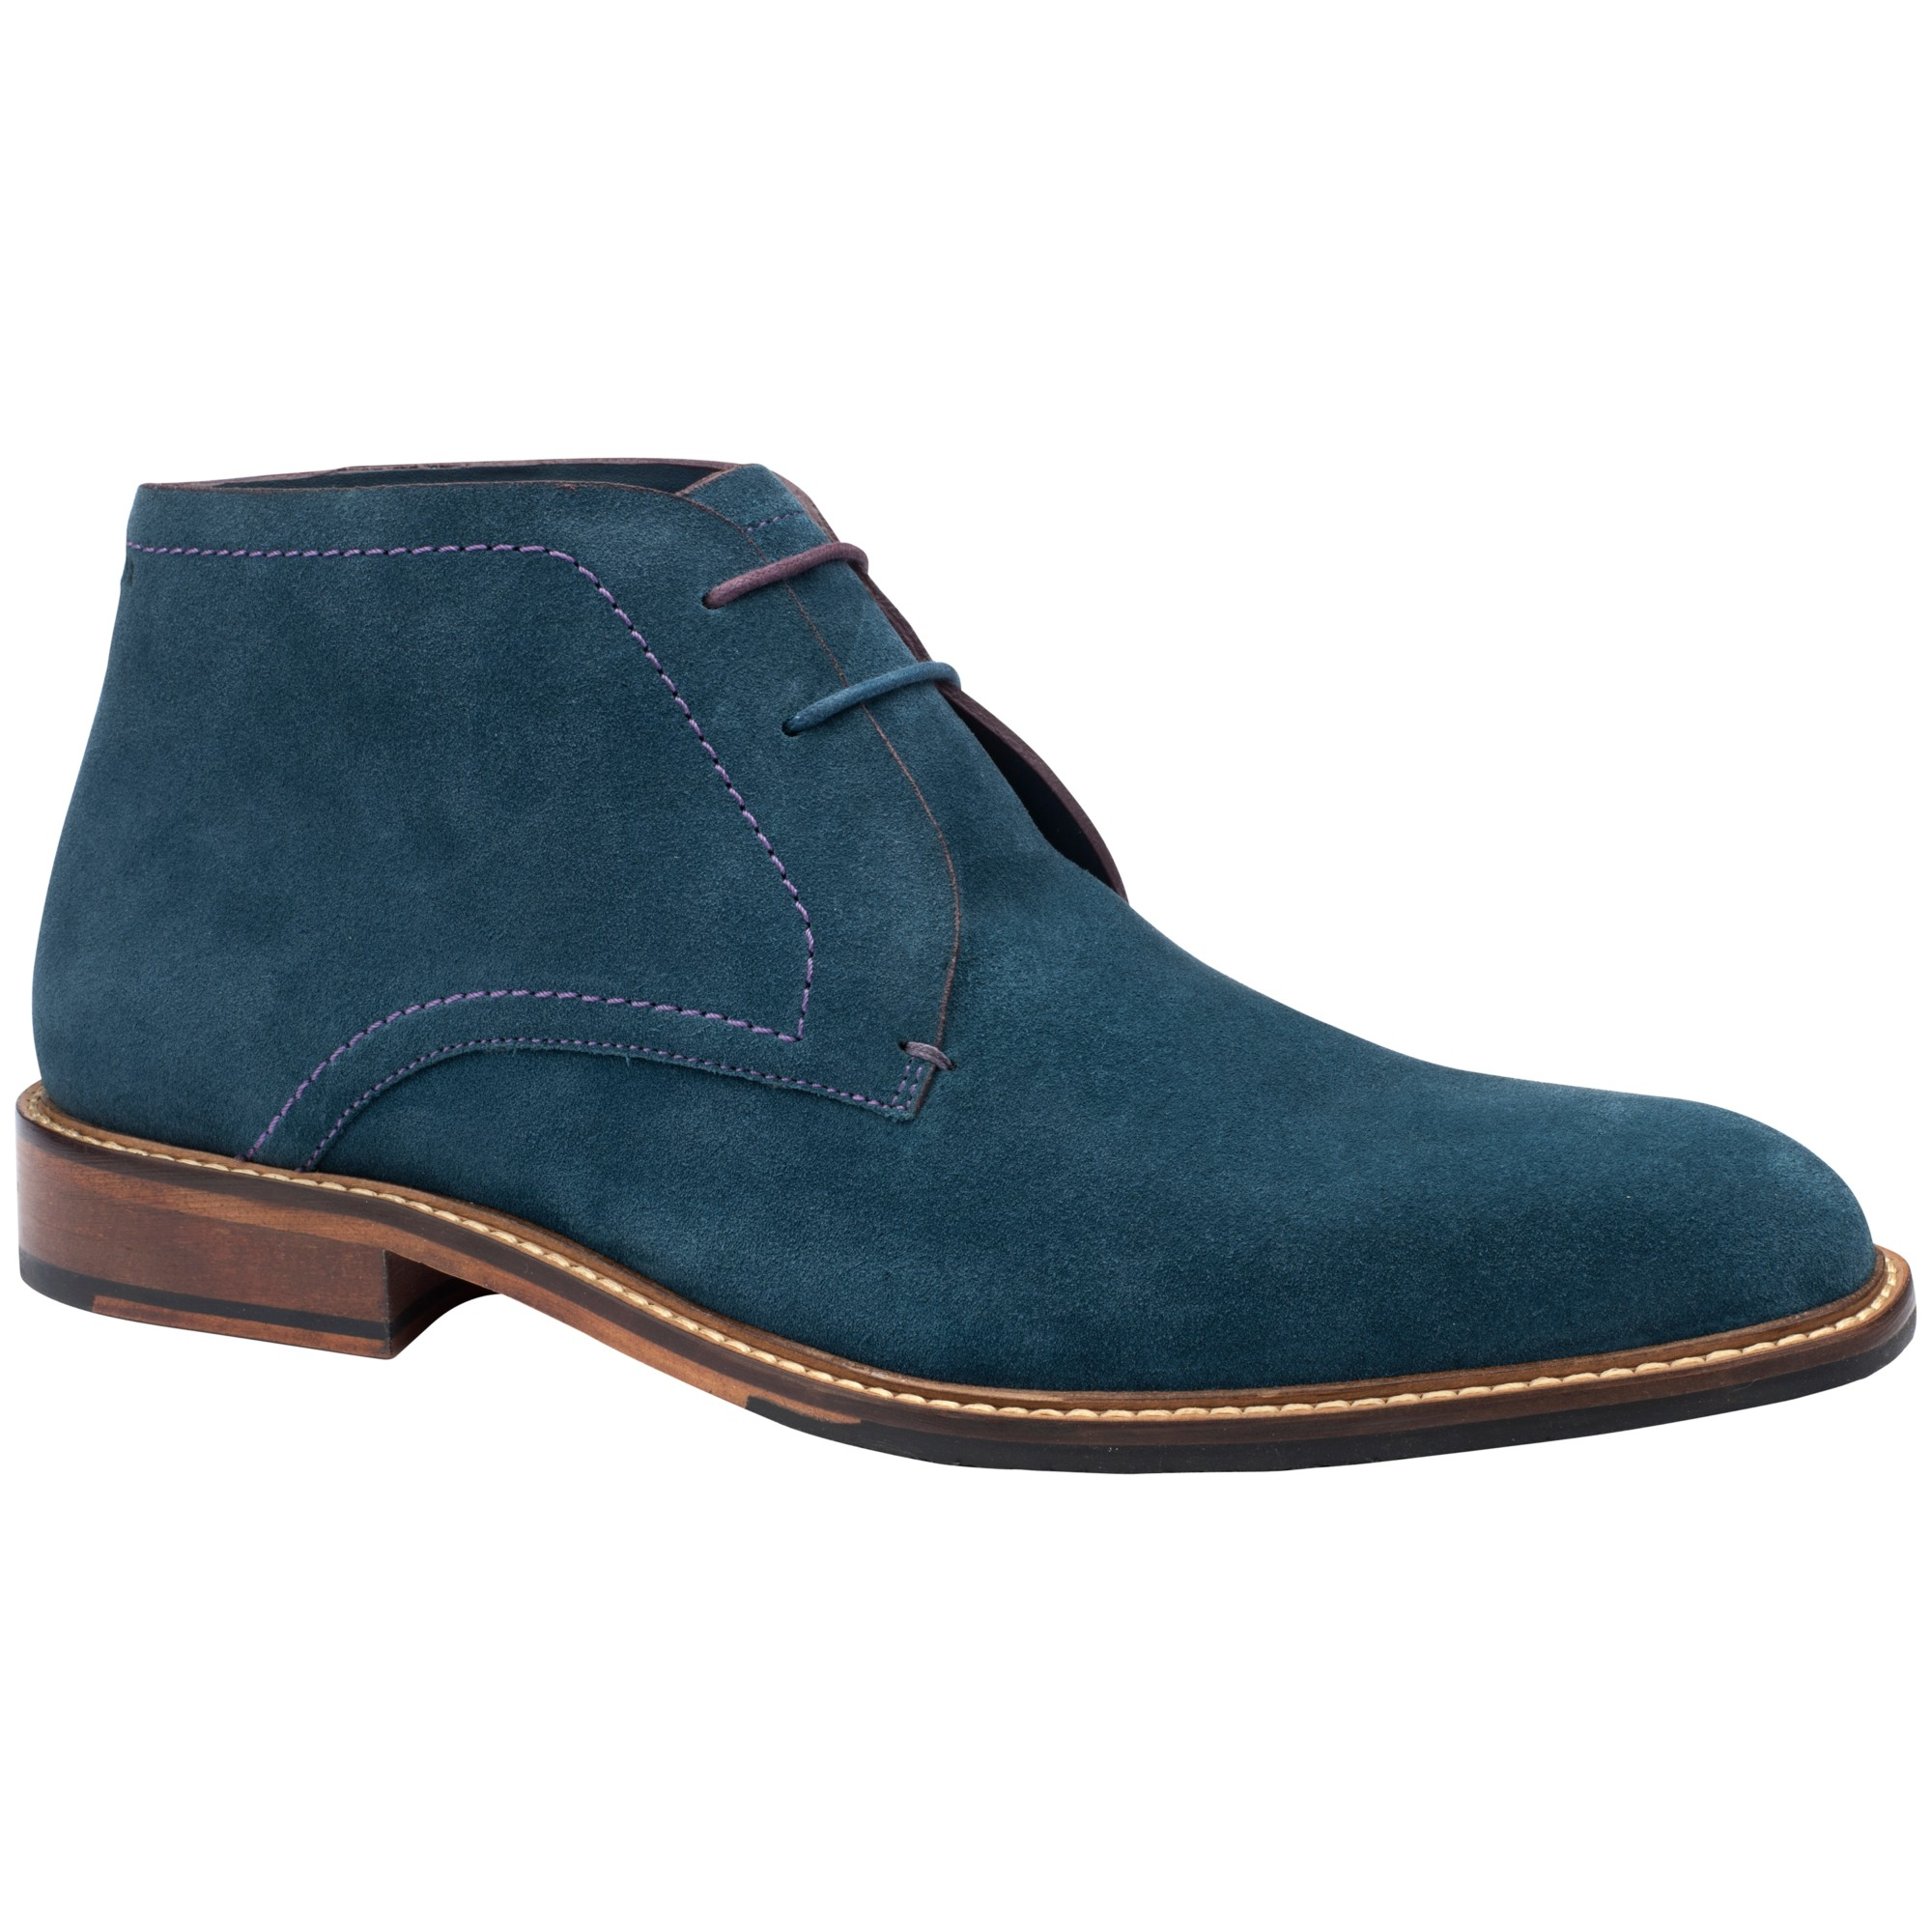 0e5af9074a69 Ted Baker Linnus Chukka Boots in Blue for Men - Lyst